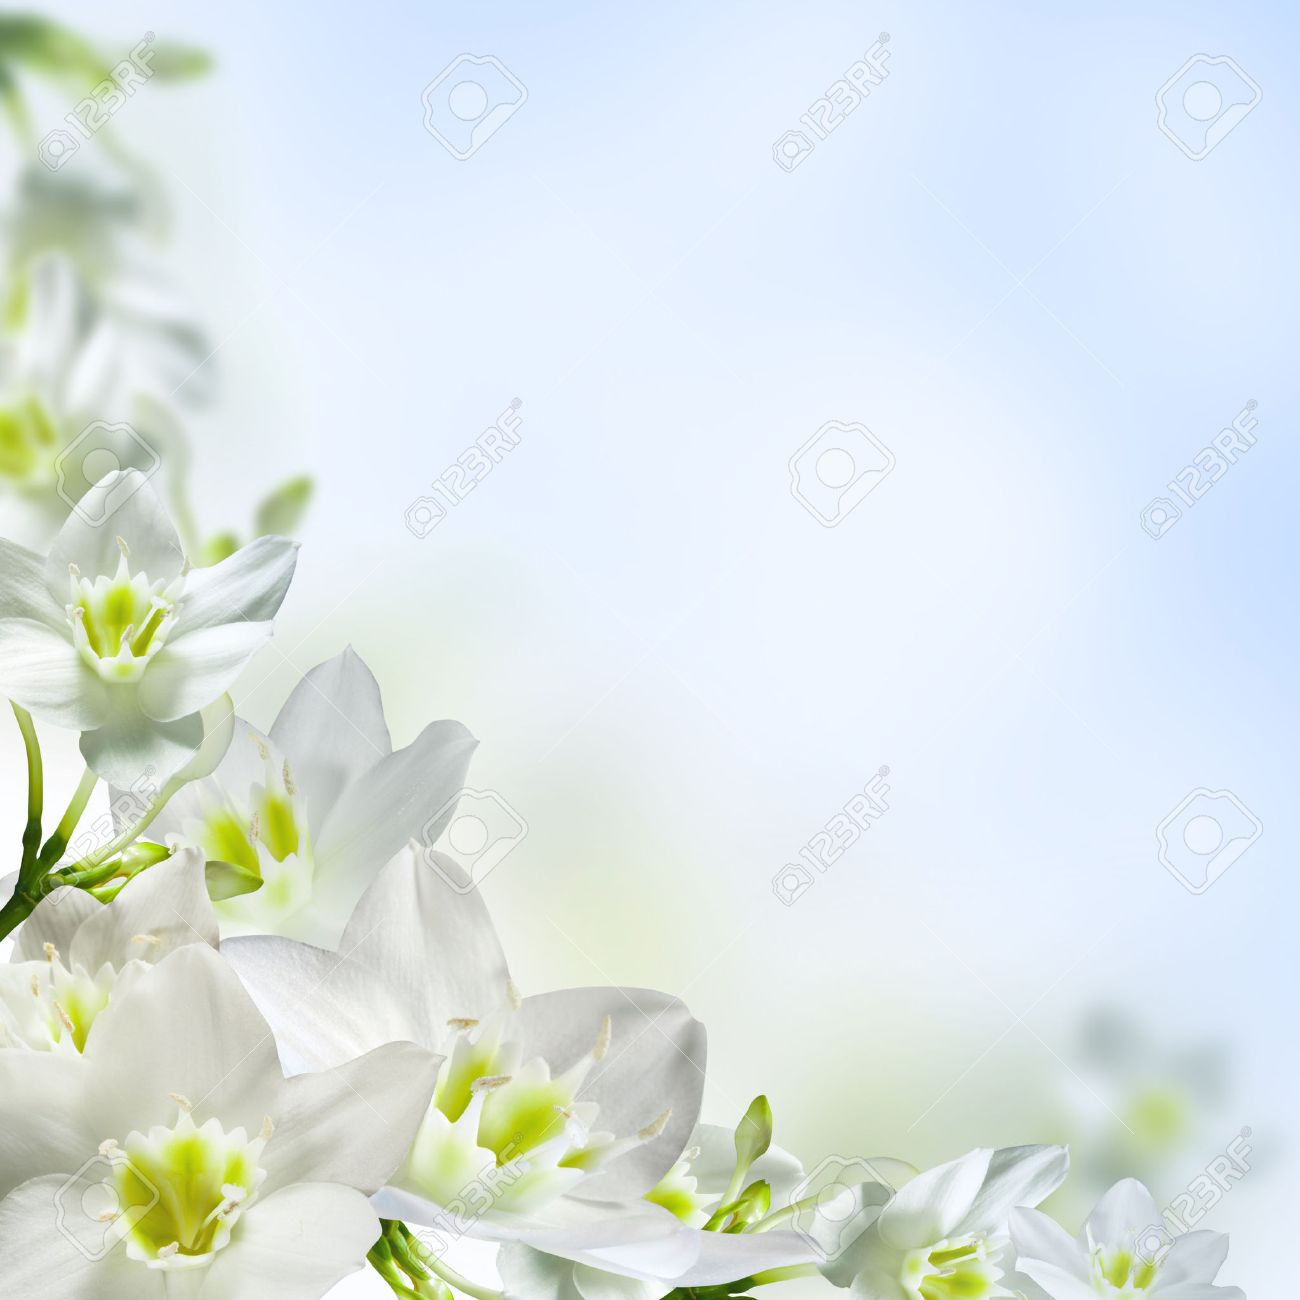 White flowers on a light blue background stock photo picture and stock photo white flowers on a light blue background mightylinksfo Choice Image